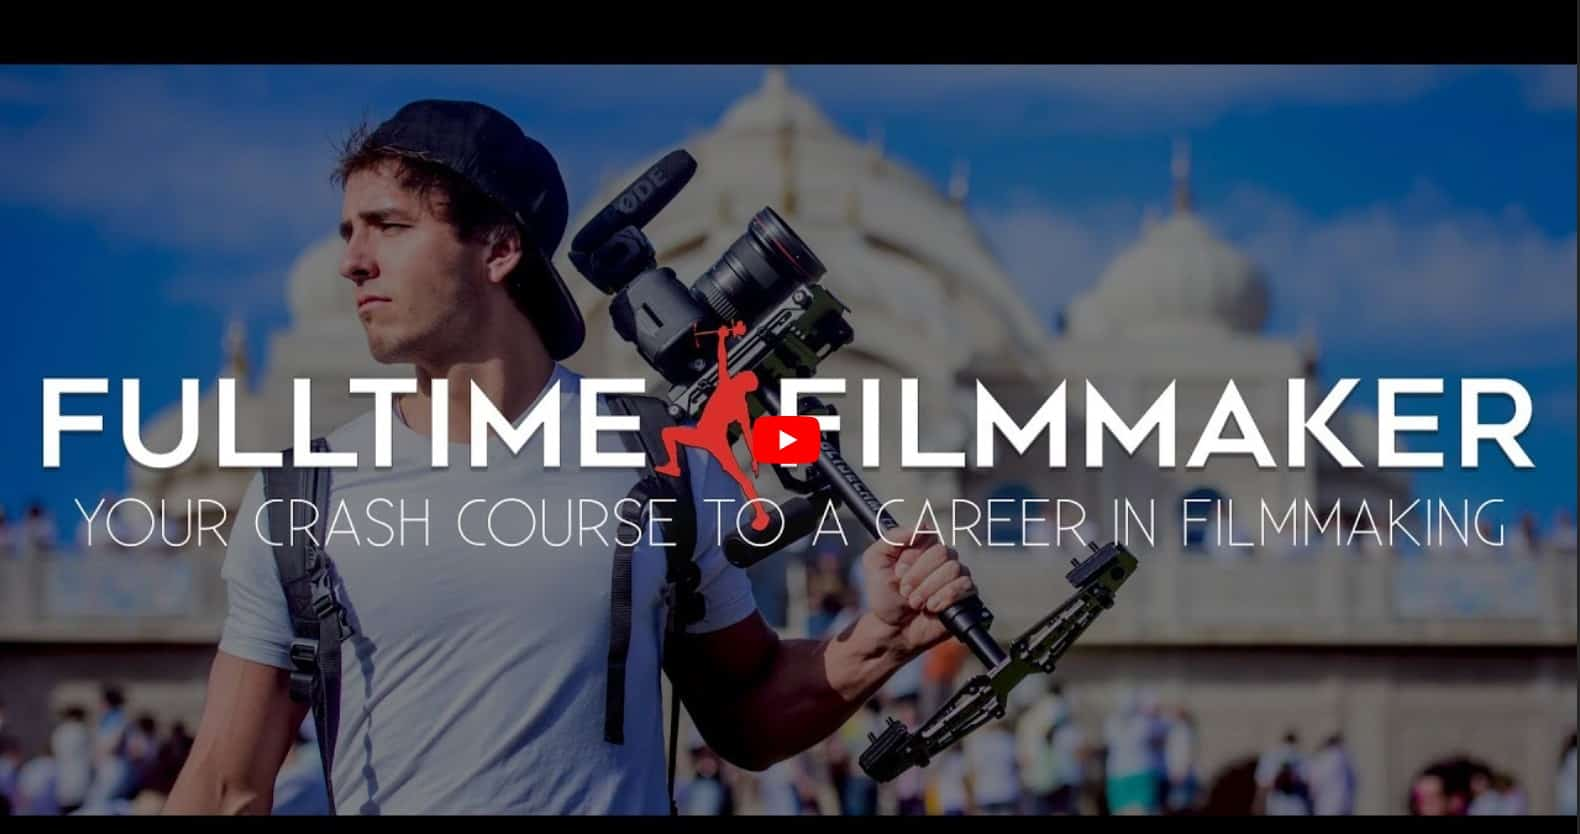 Full Time Filmmaker by Parker Walbeck 2018